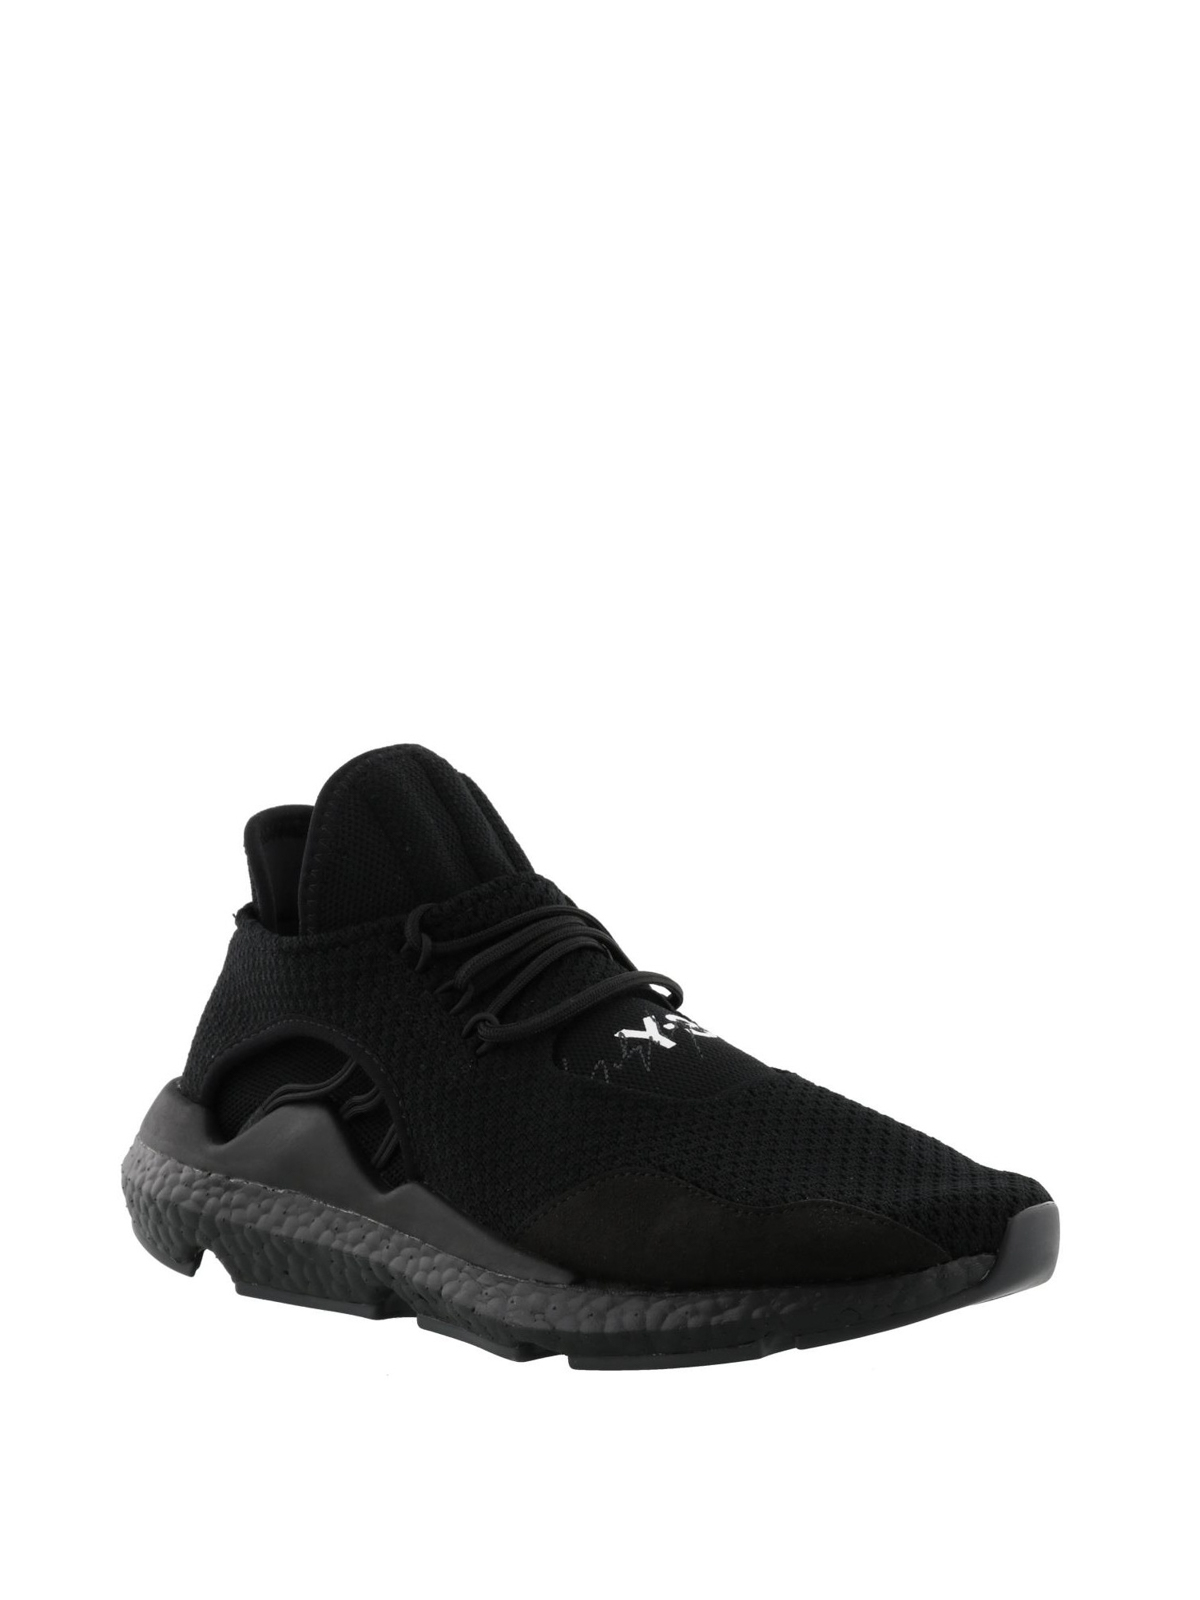 e526edf9a35f9 Adidas Y-3 - Saikou sneakers with Boost cushioning - trainers - BC0950